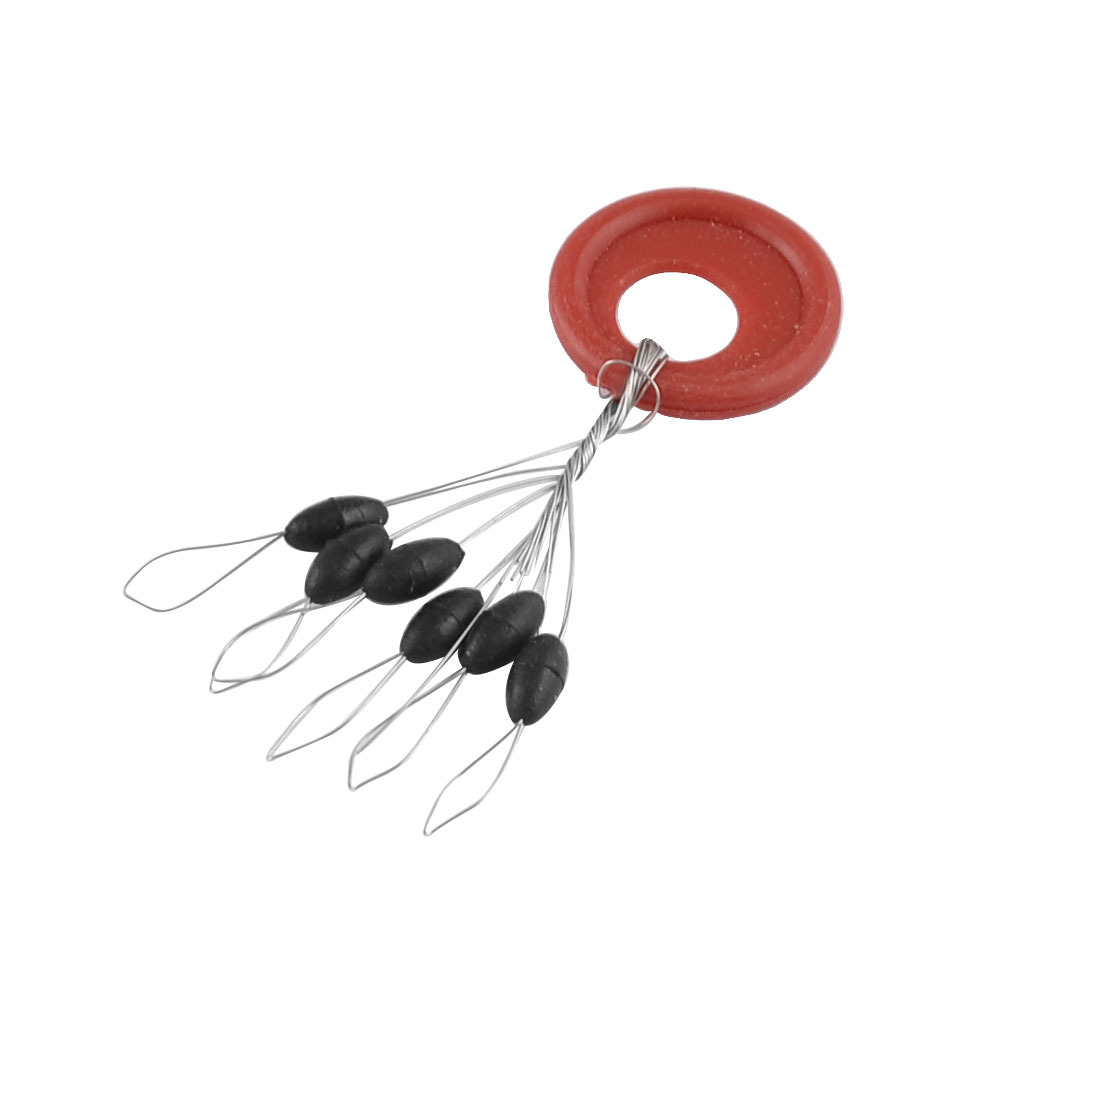 13 Pcs 6 in 1 Black Rubber Oval Stop Bead Red Ring Fishing Bobber Stopper